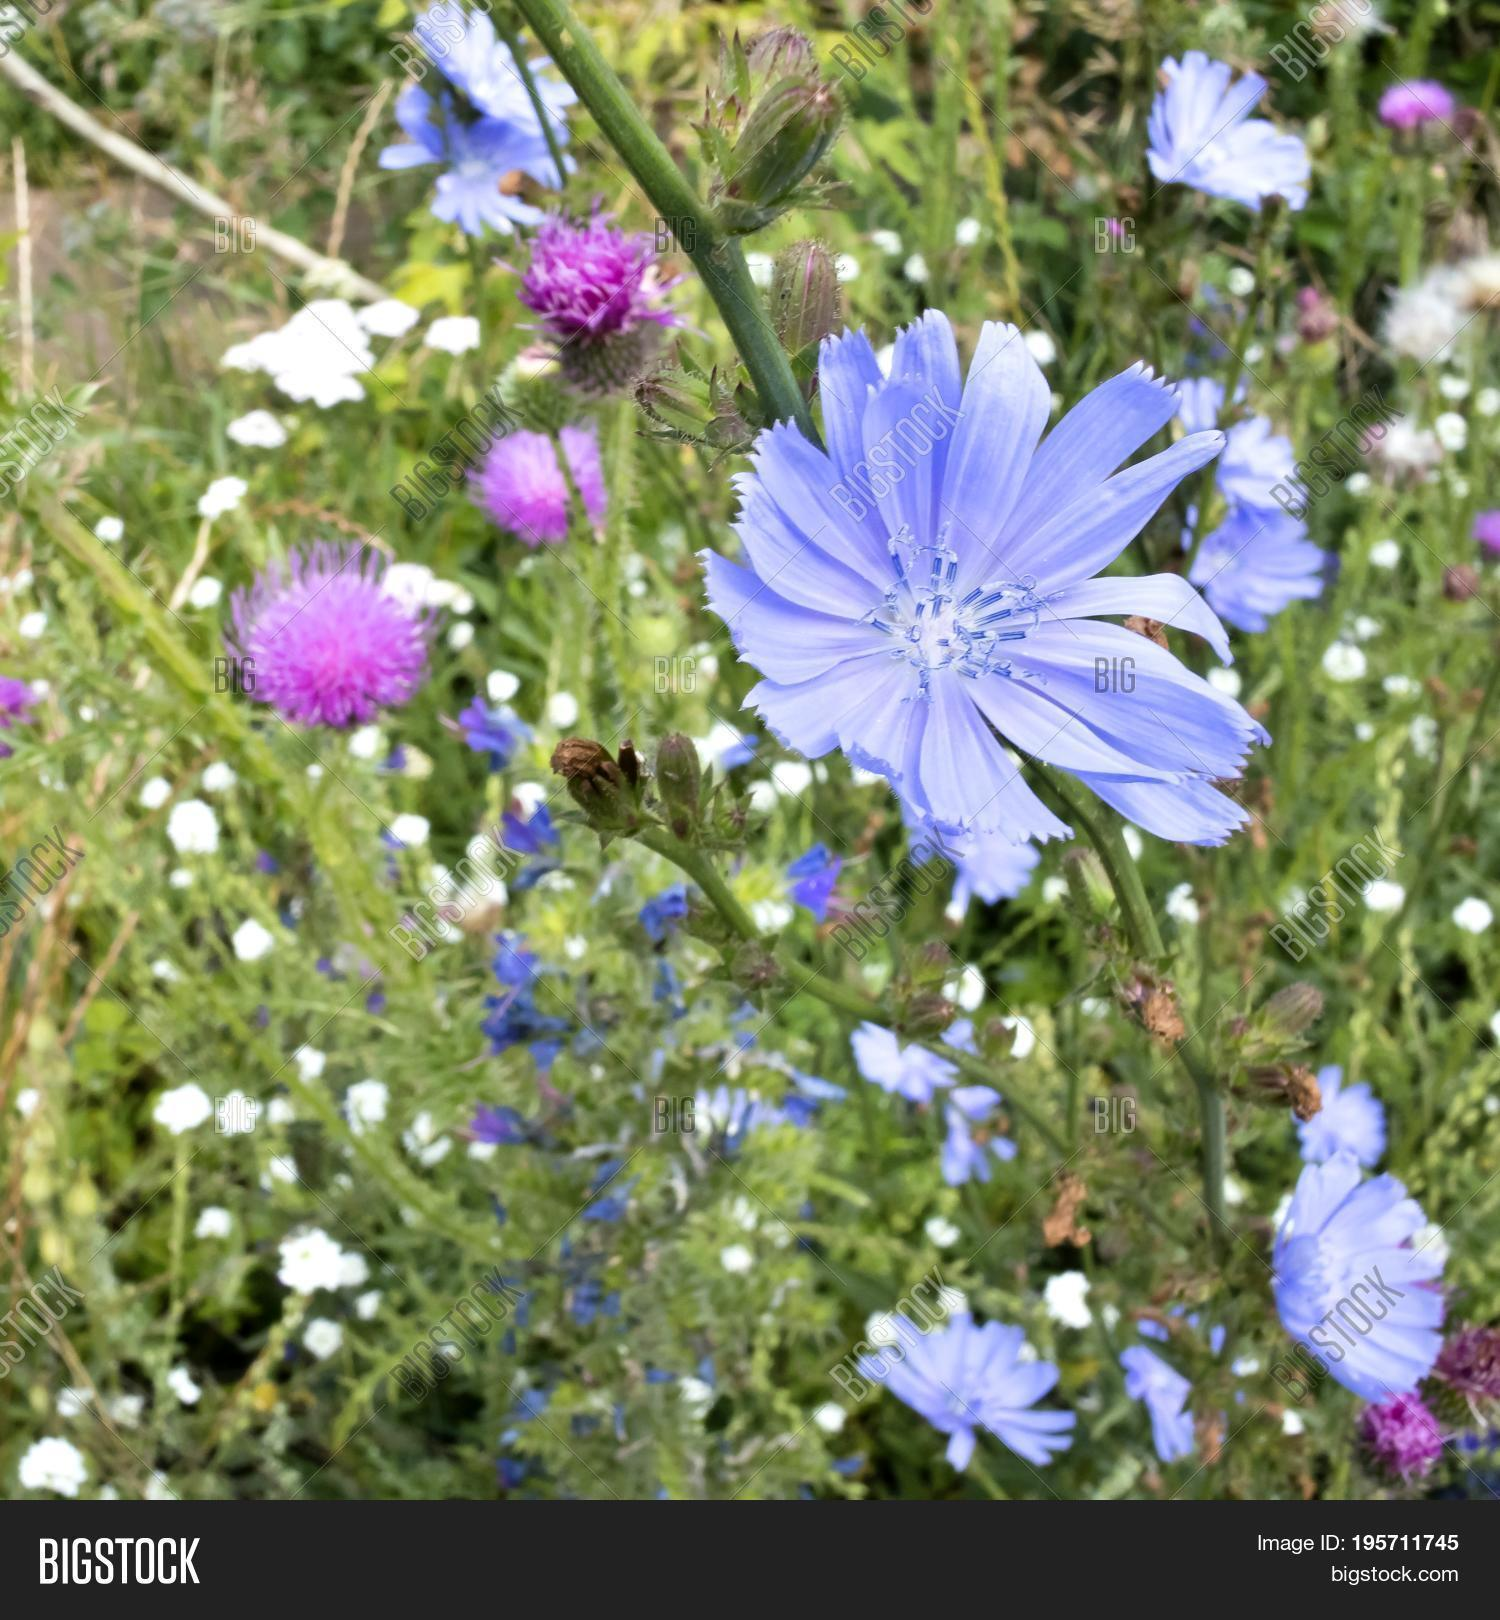 blue flowers of chicory with latin name Cichorium